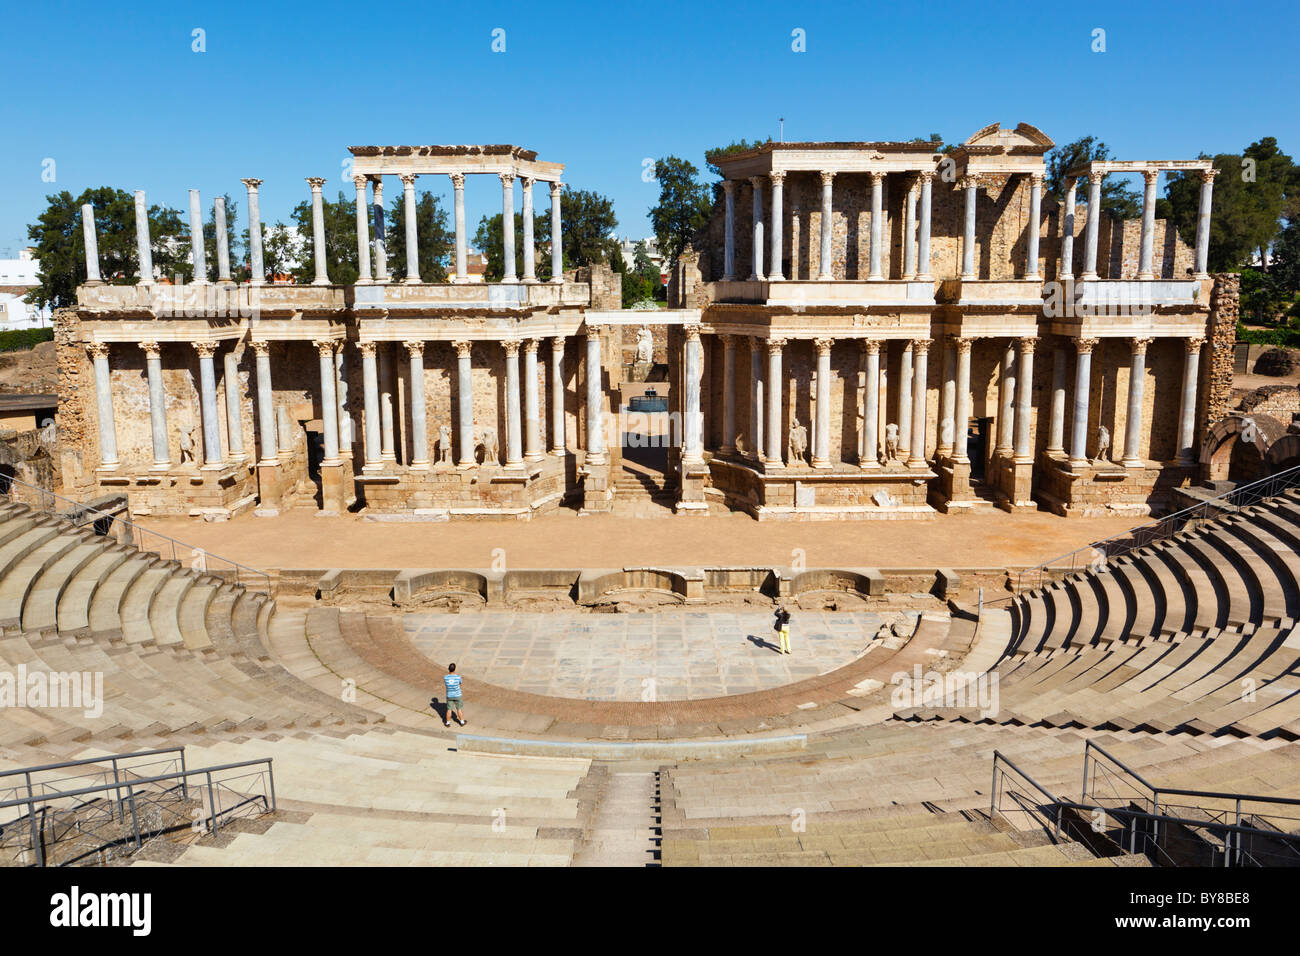 Merida, Badajoz Province, Spain. The Roman theatre built in the first century BC. - Stock Image